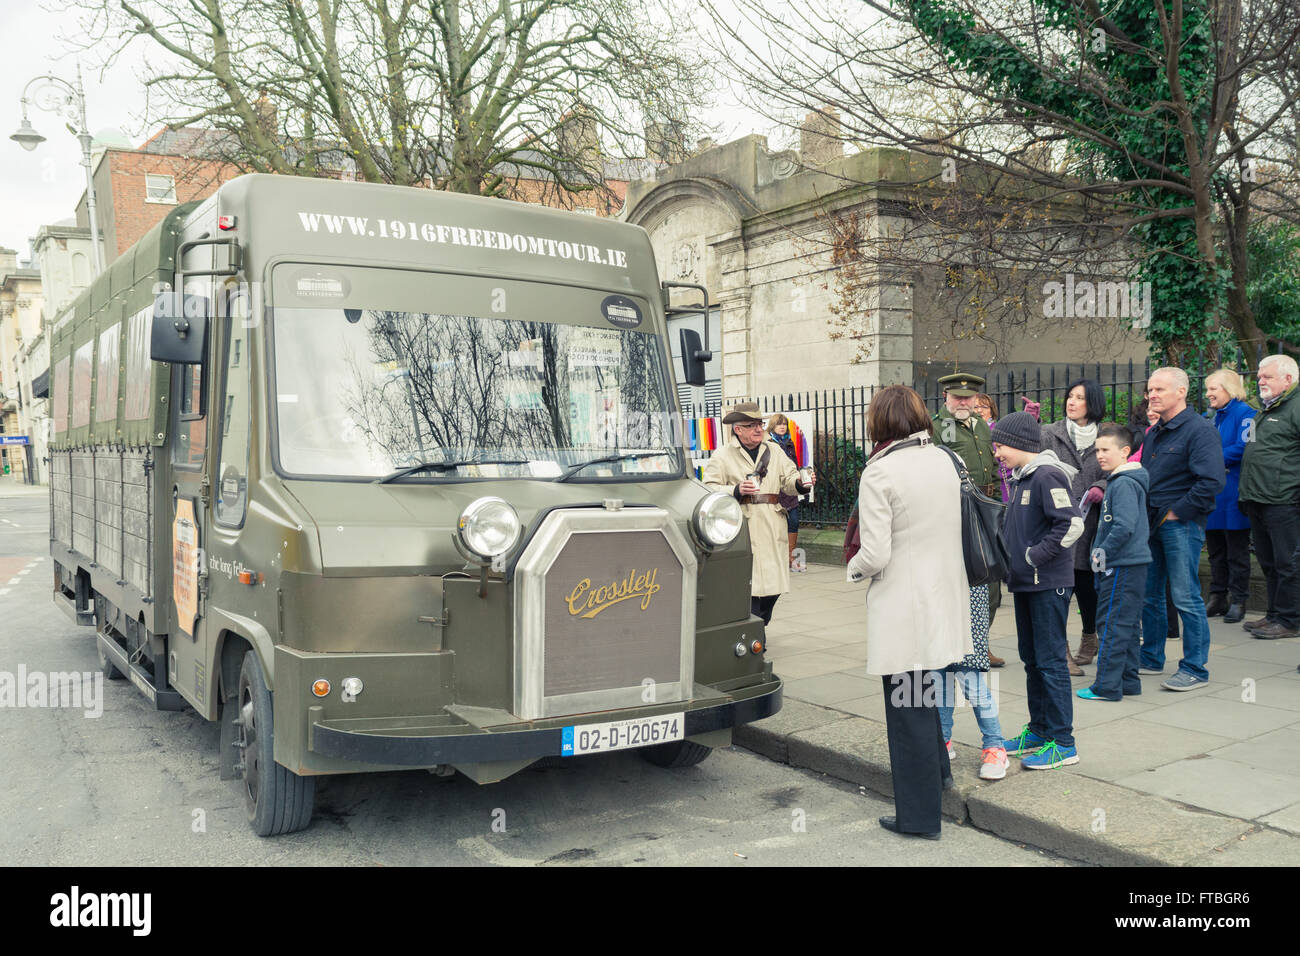 1916 freedom tour bus Dublin tourist attraction - Stock Image